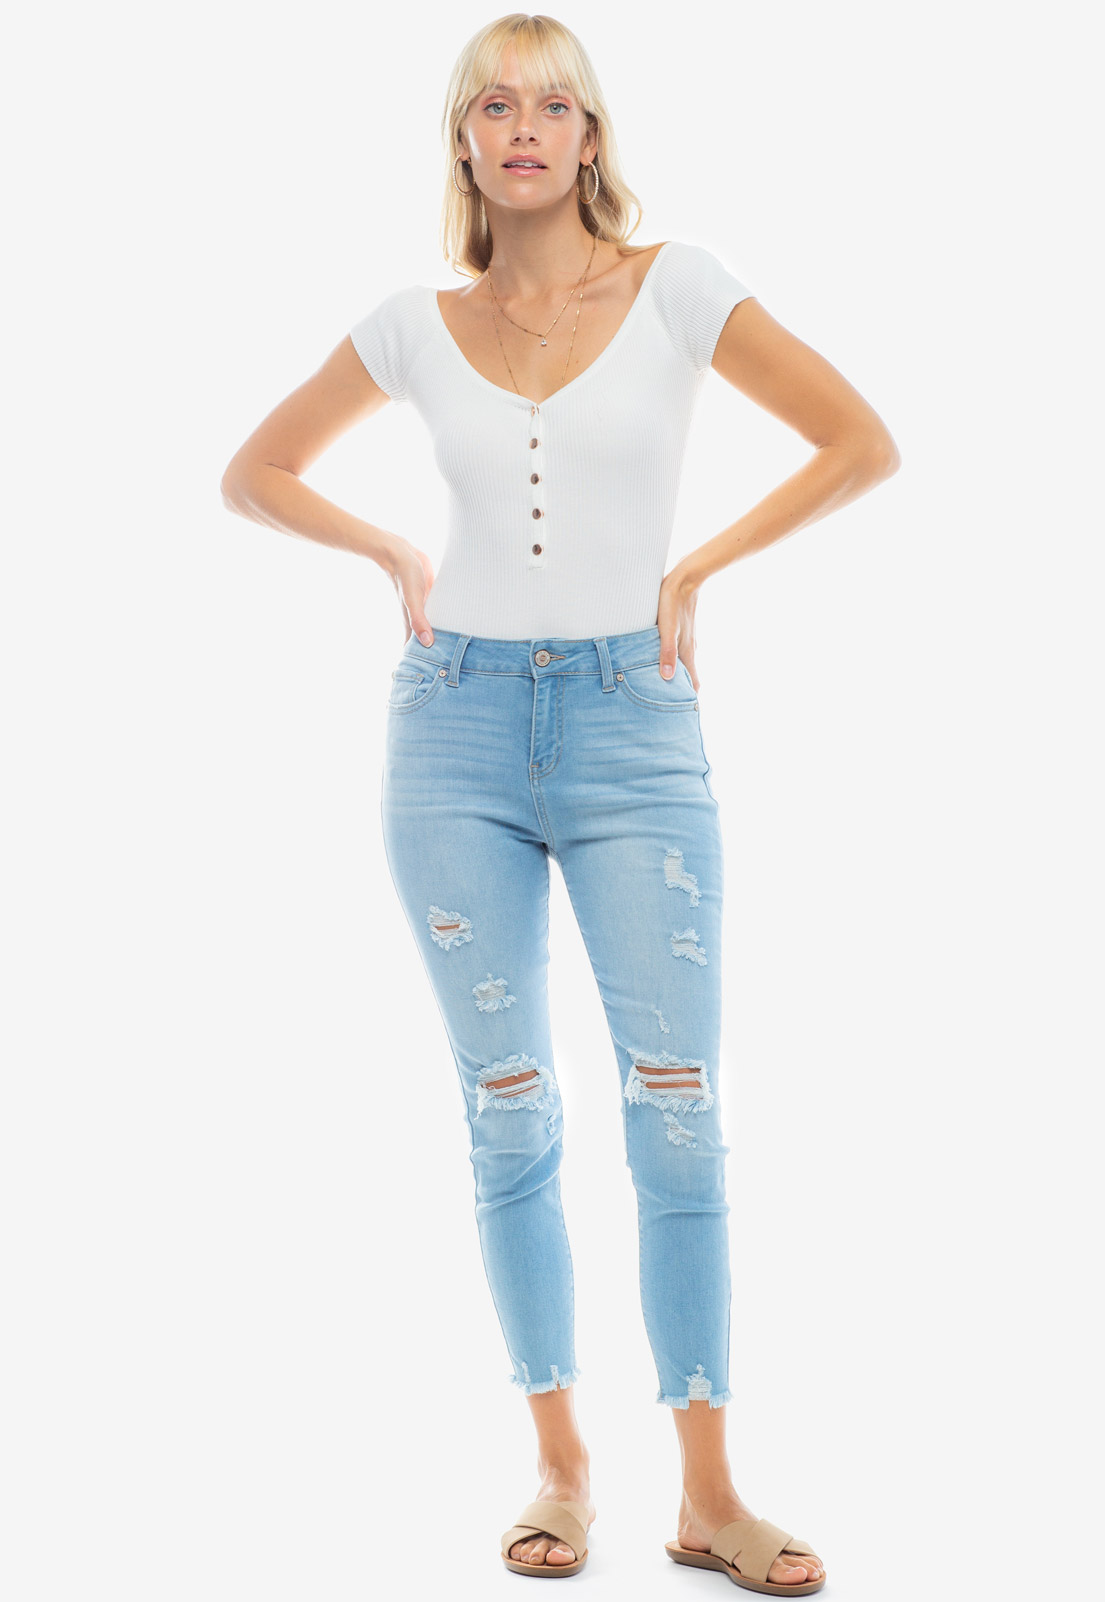 Wide V-Neck Button Detailed Bodysuit